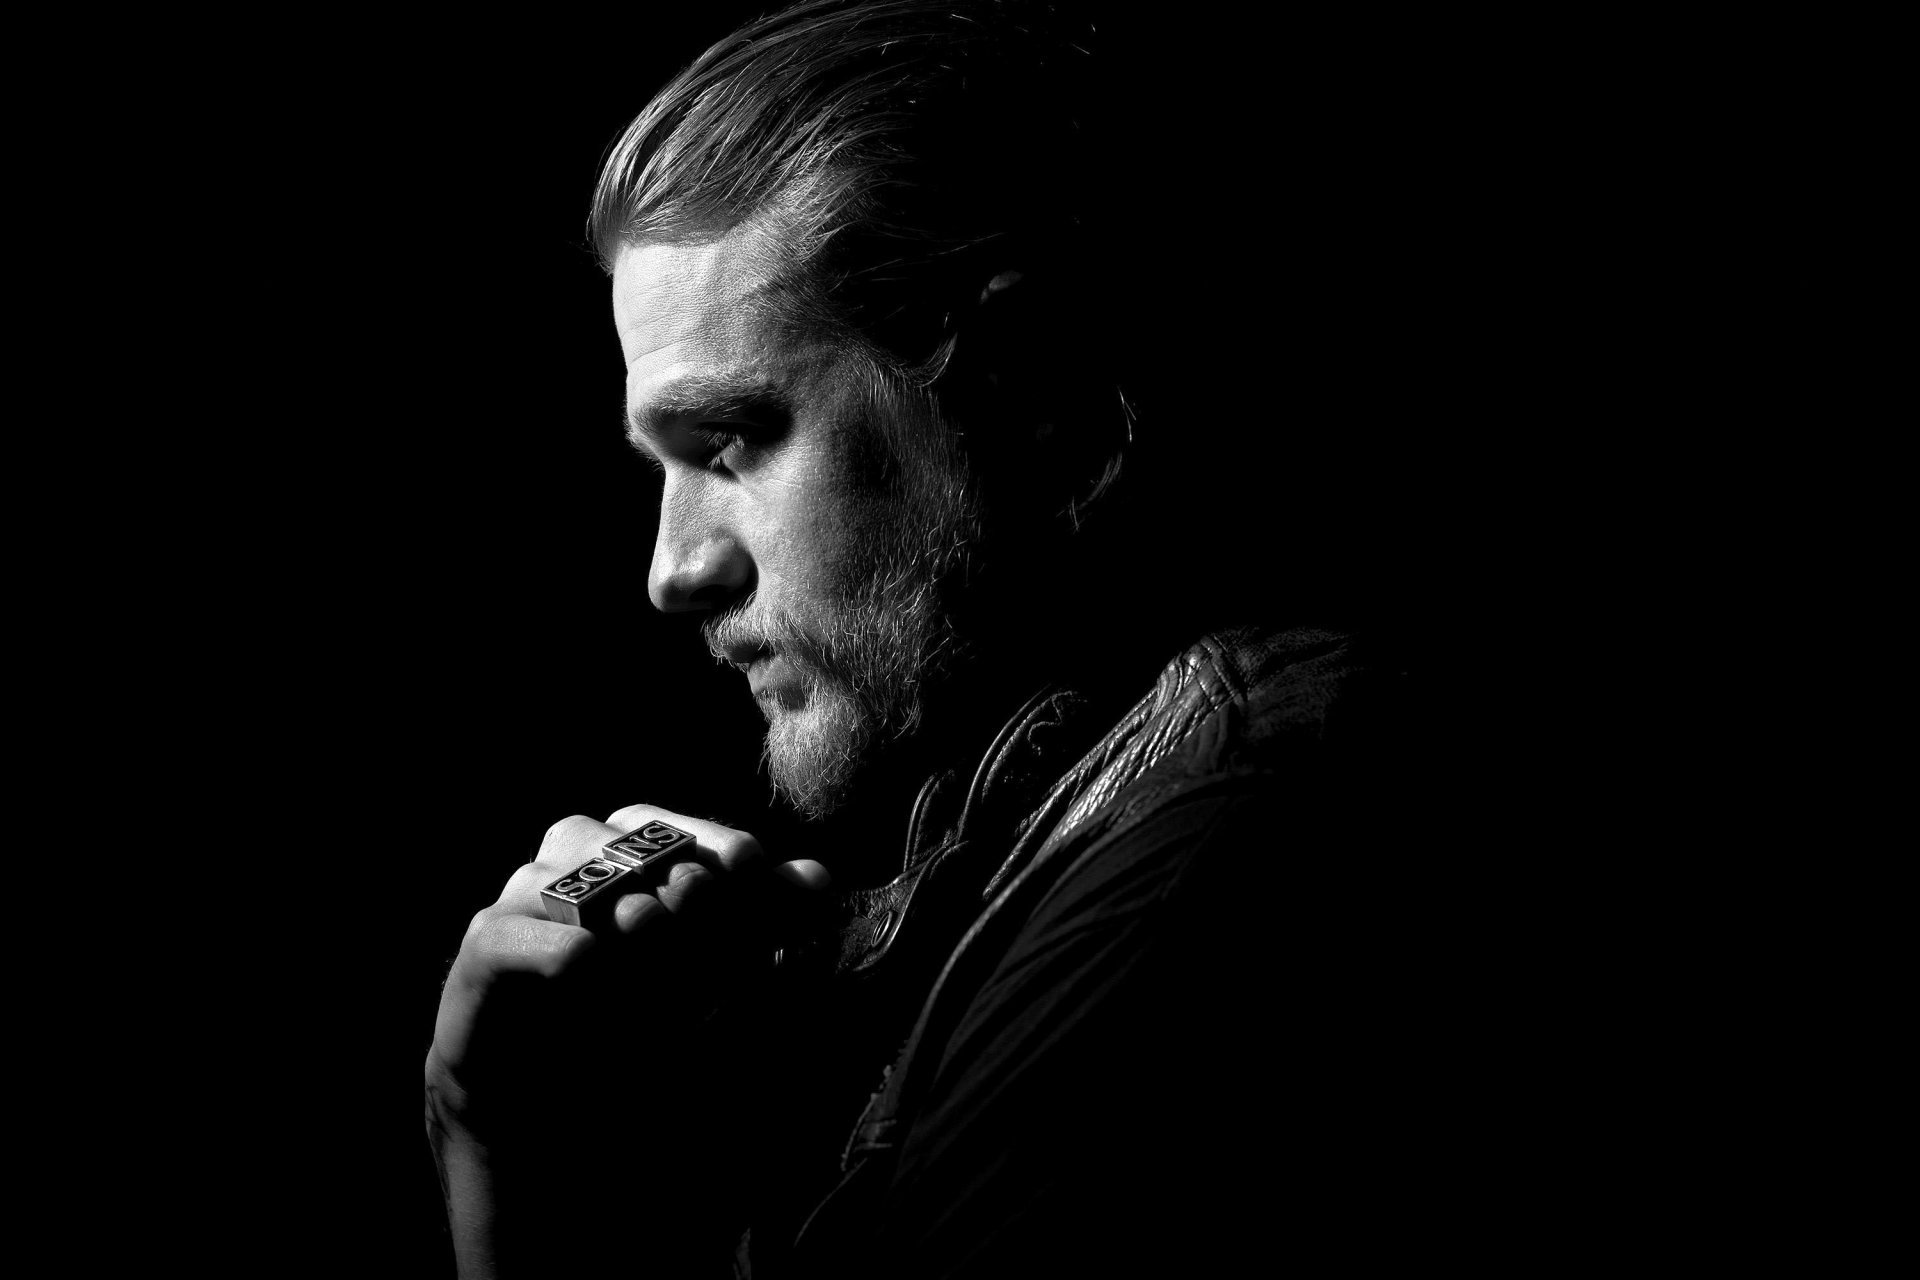 1920x1280 - Charlie Hunnam Wallpapers 4